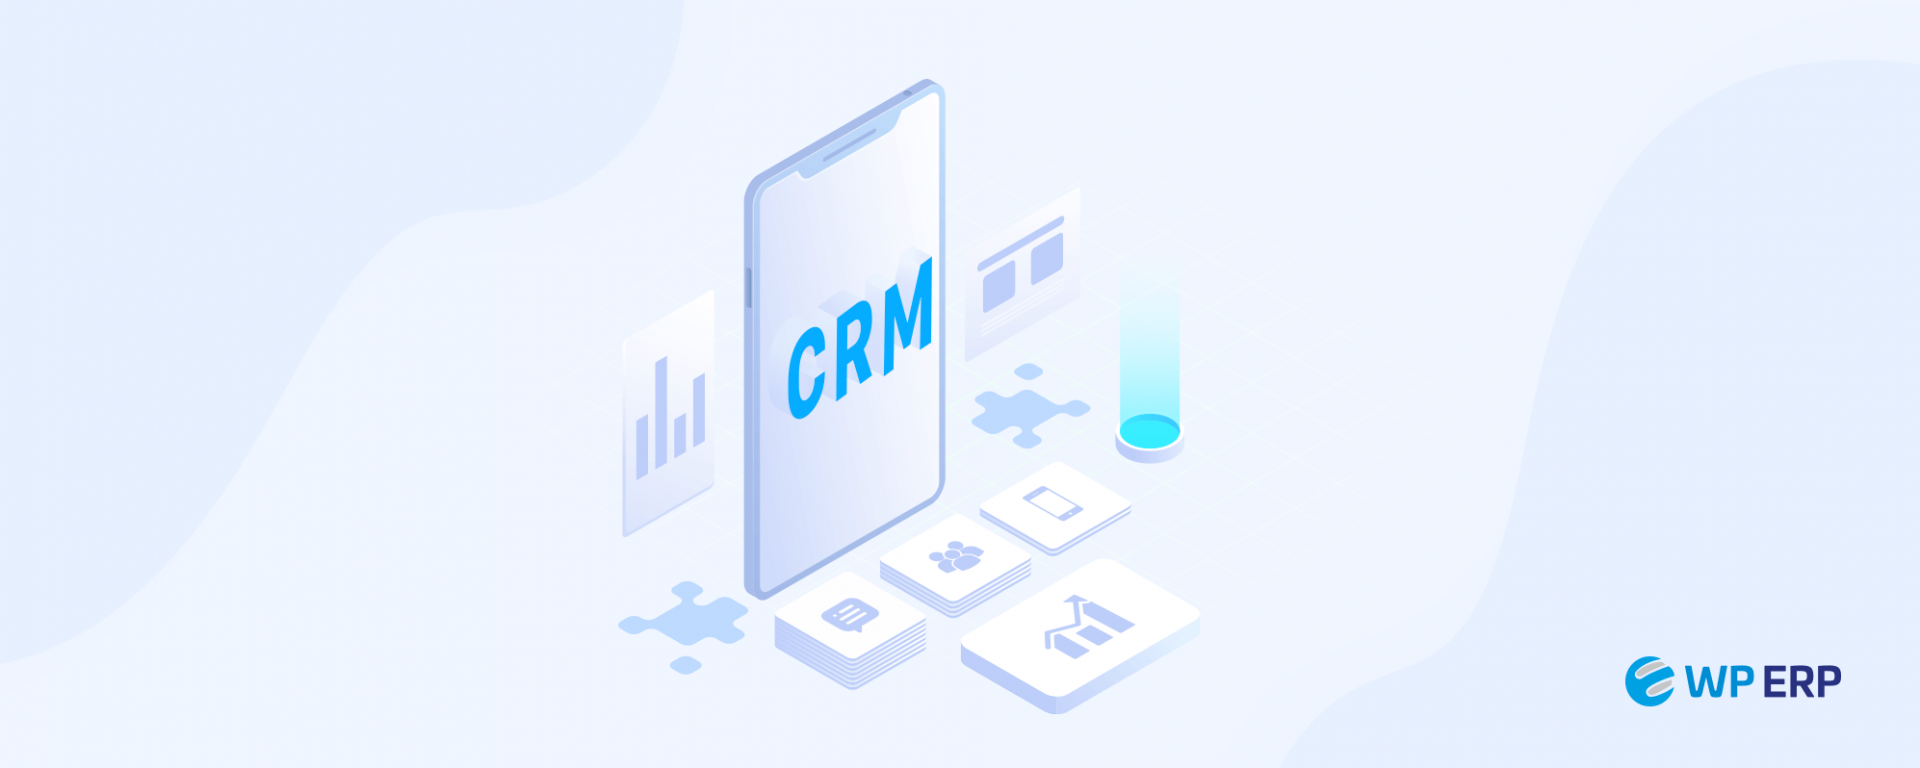 Customer Relationship Management- A Guide For Marketers